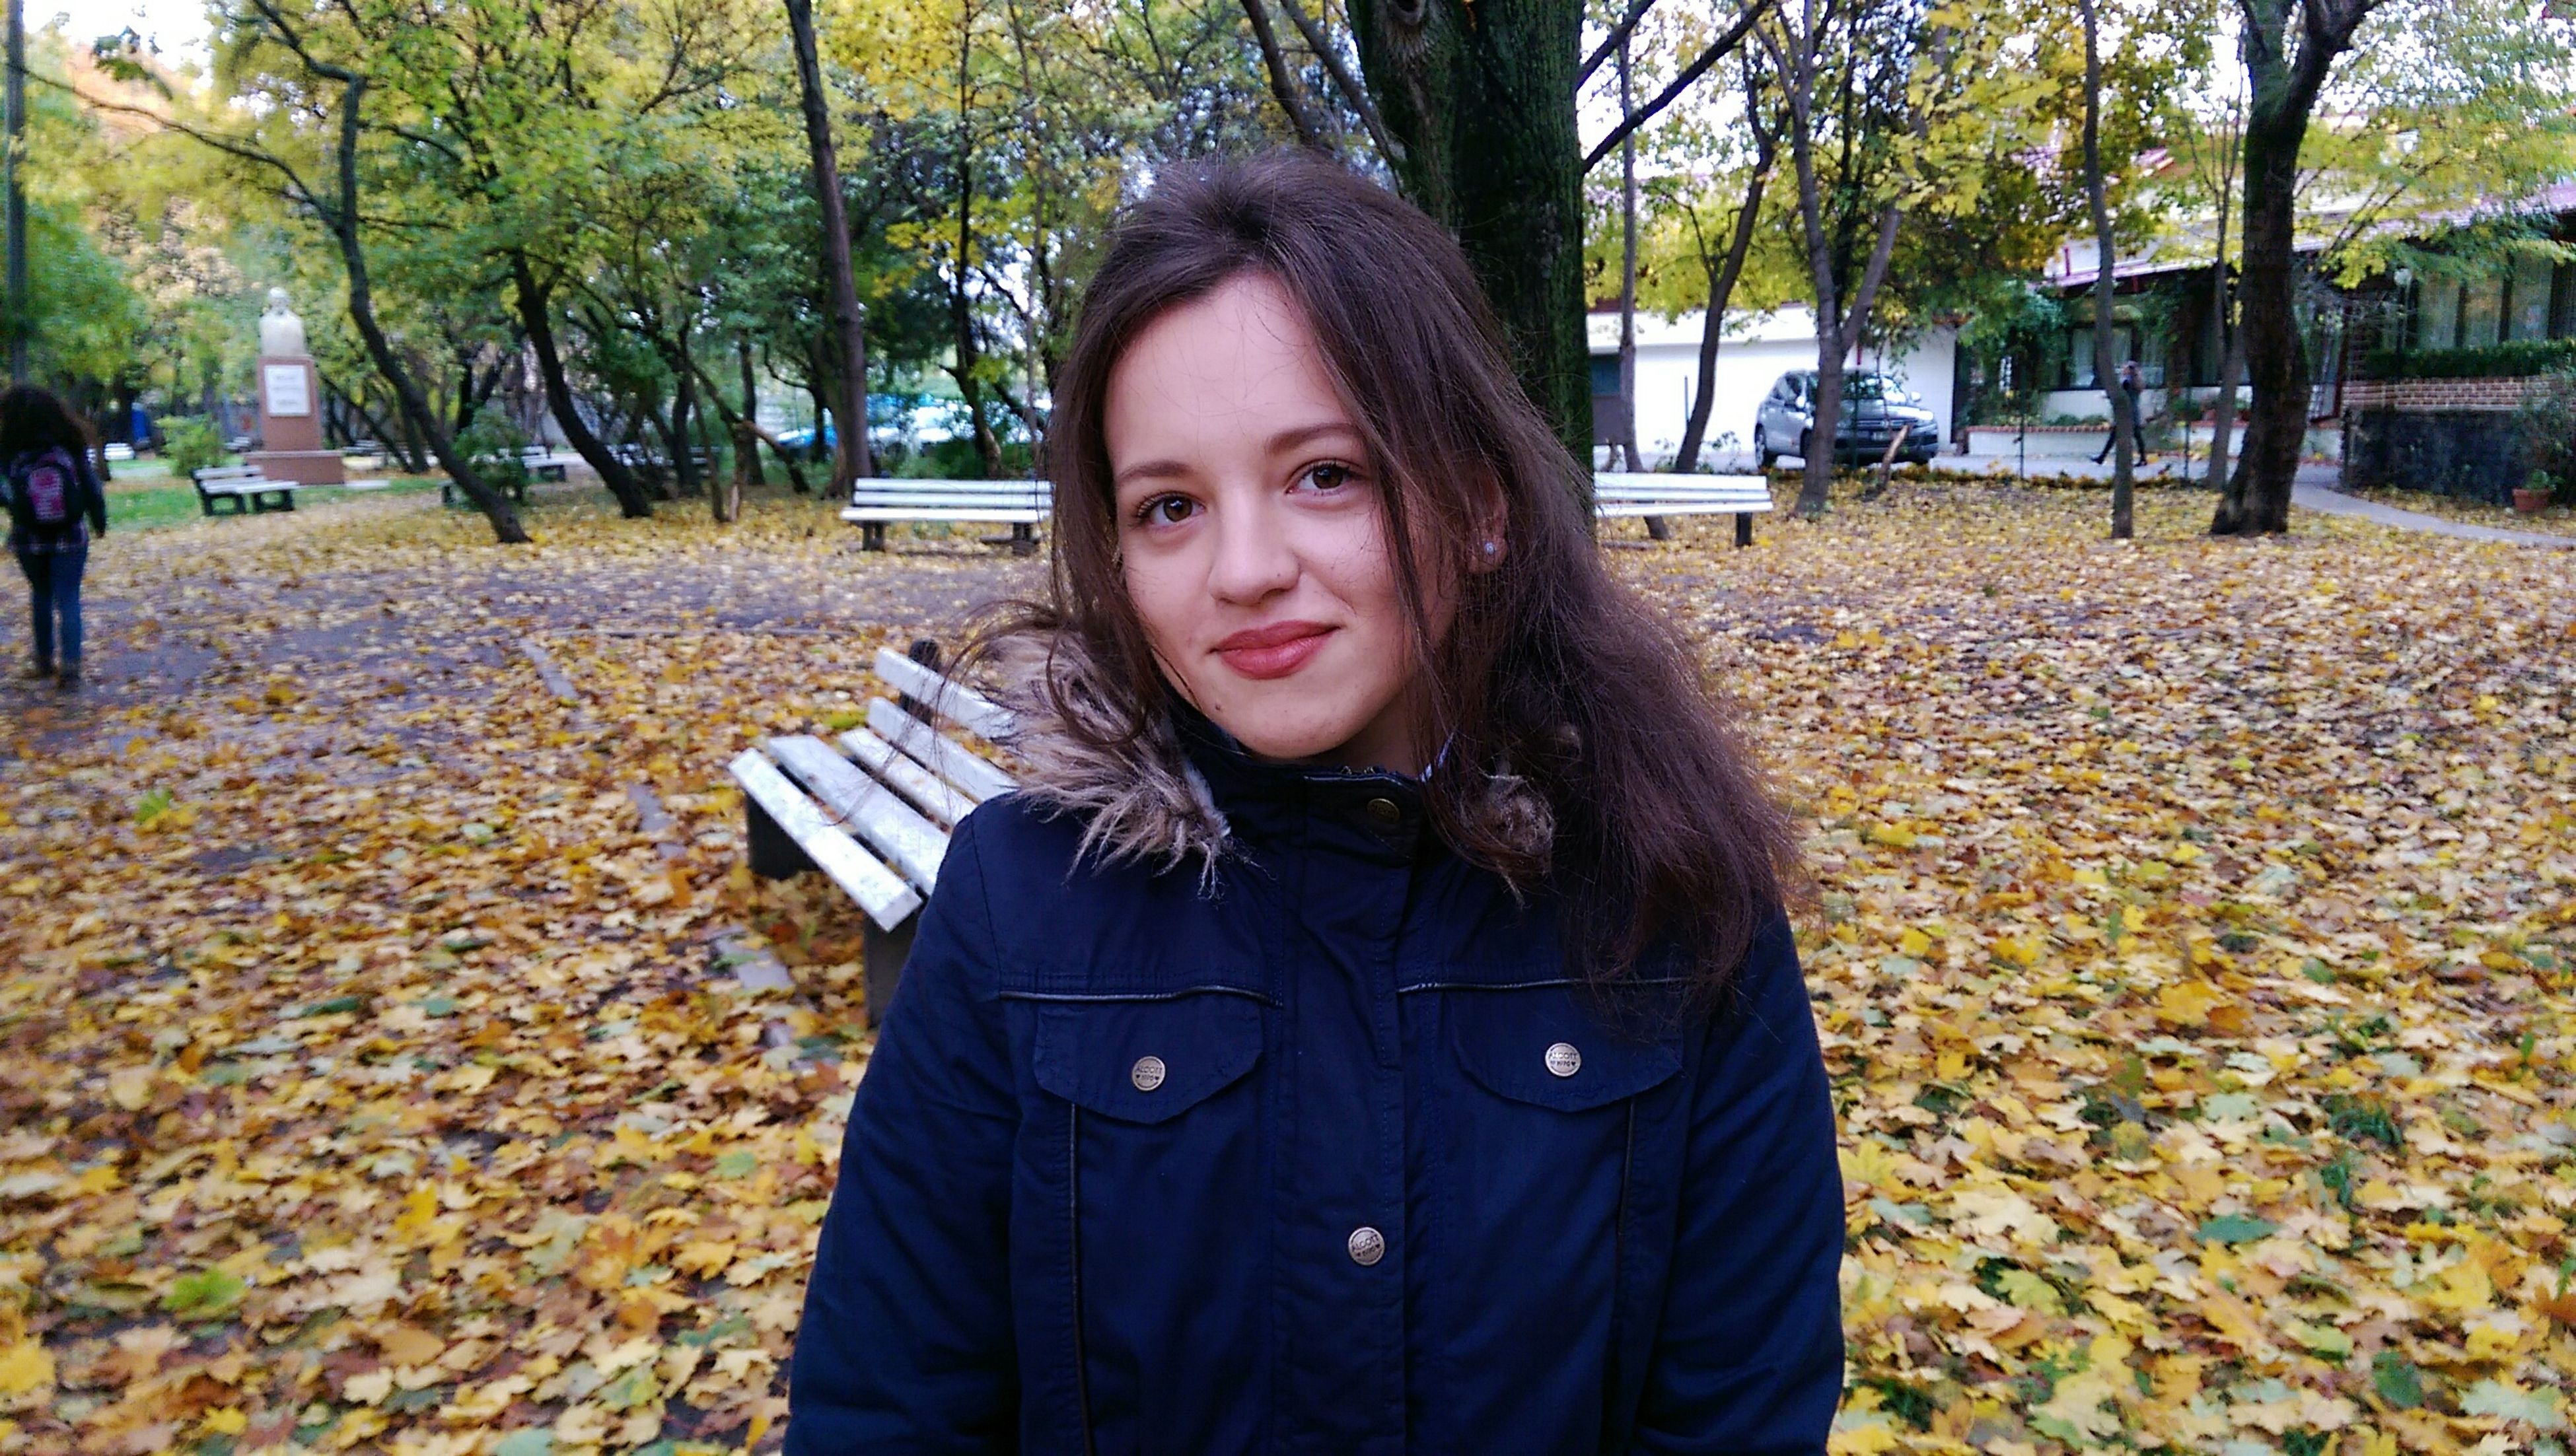 portrait, looking at camera, one person, leisure activity, young adult, lifestyles, tree, young women, autumn, real people, day, outdoors, people, beautiful woman, nature, adult